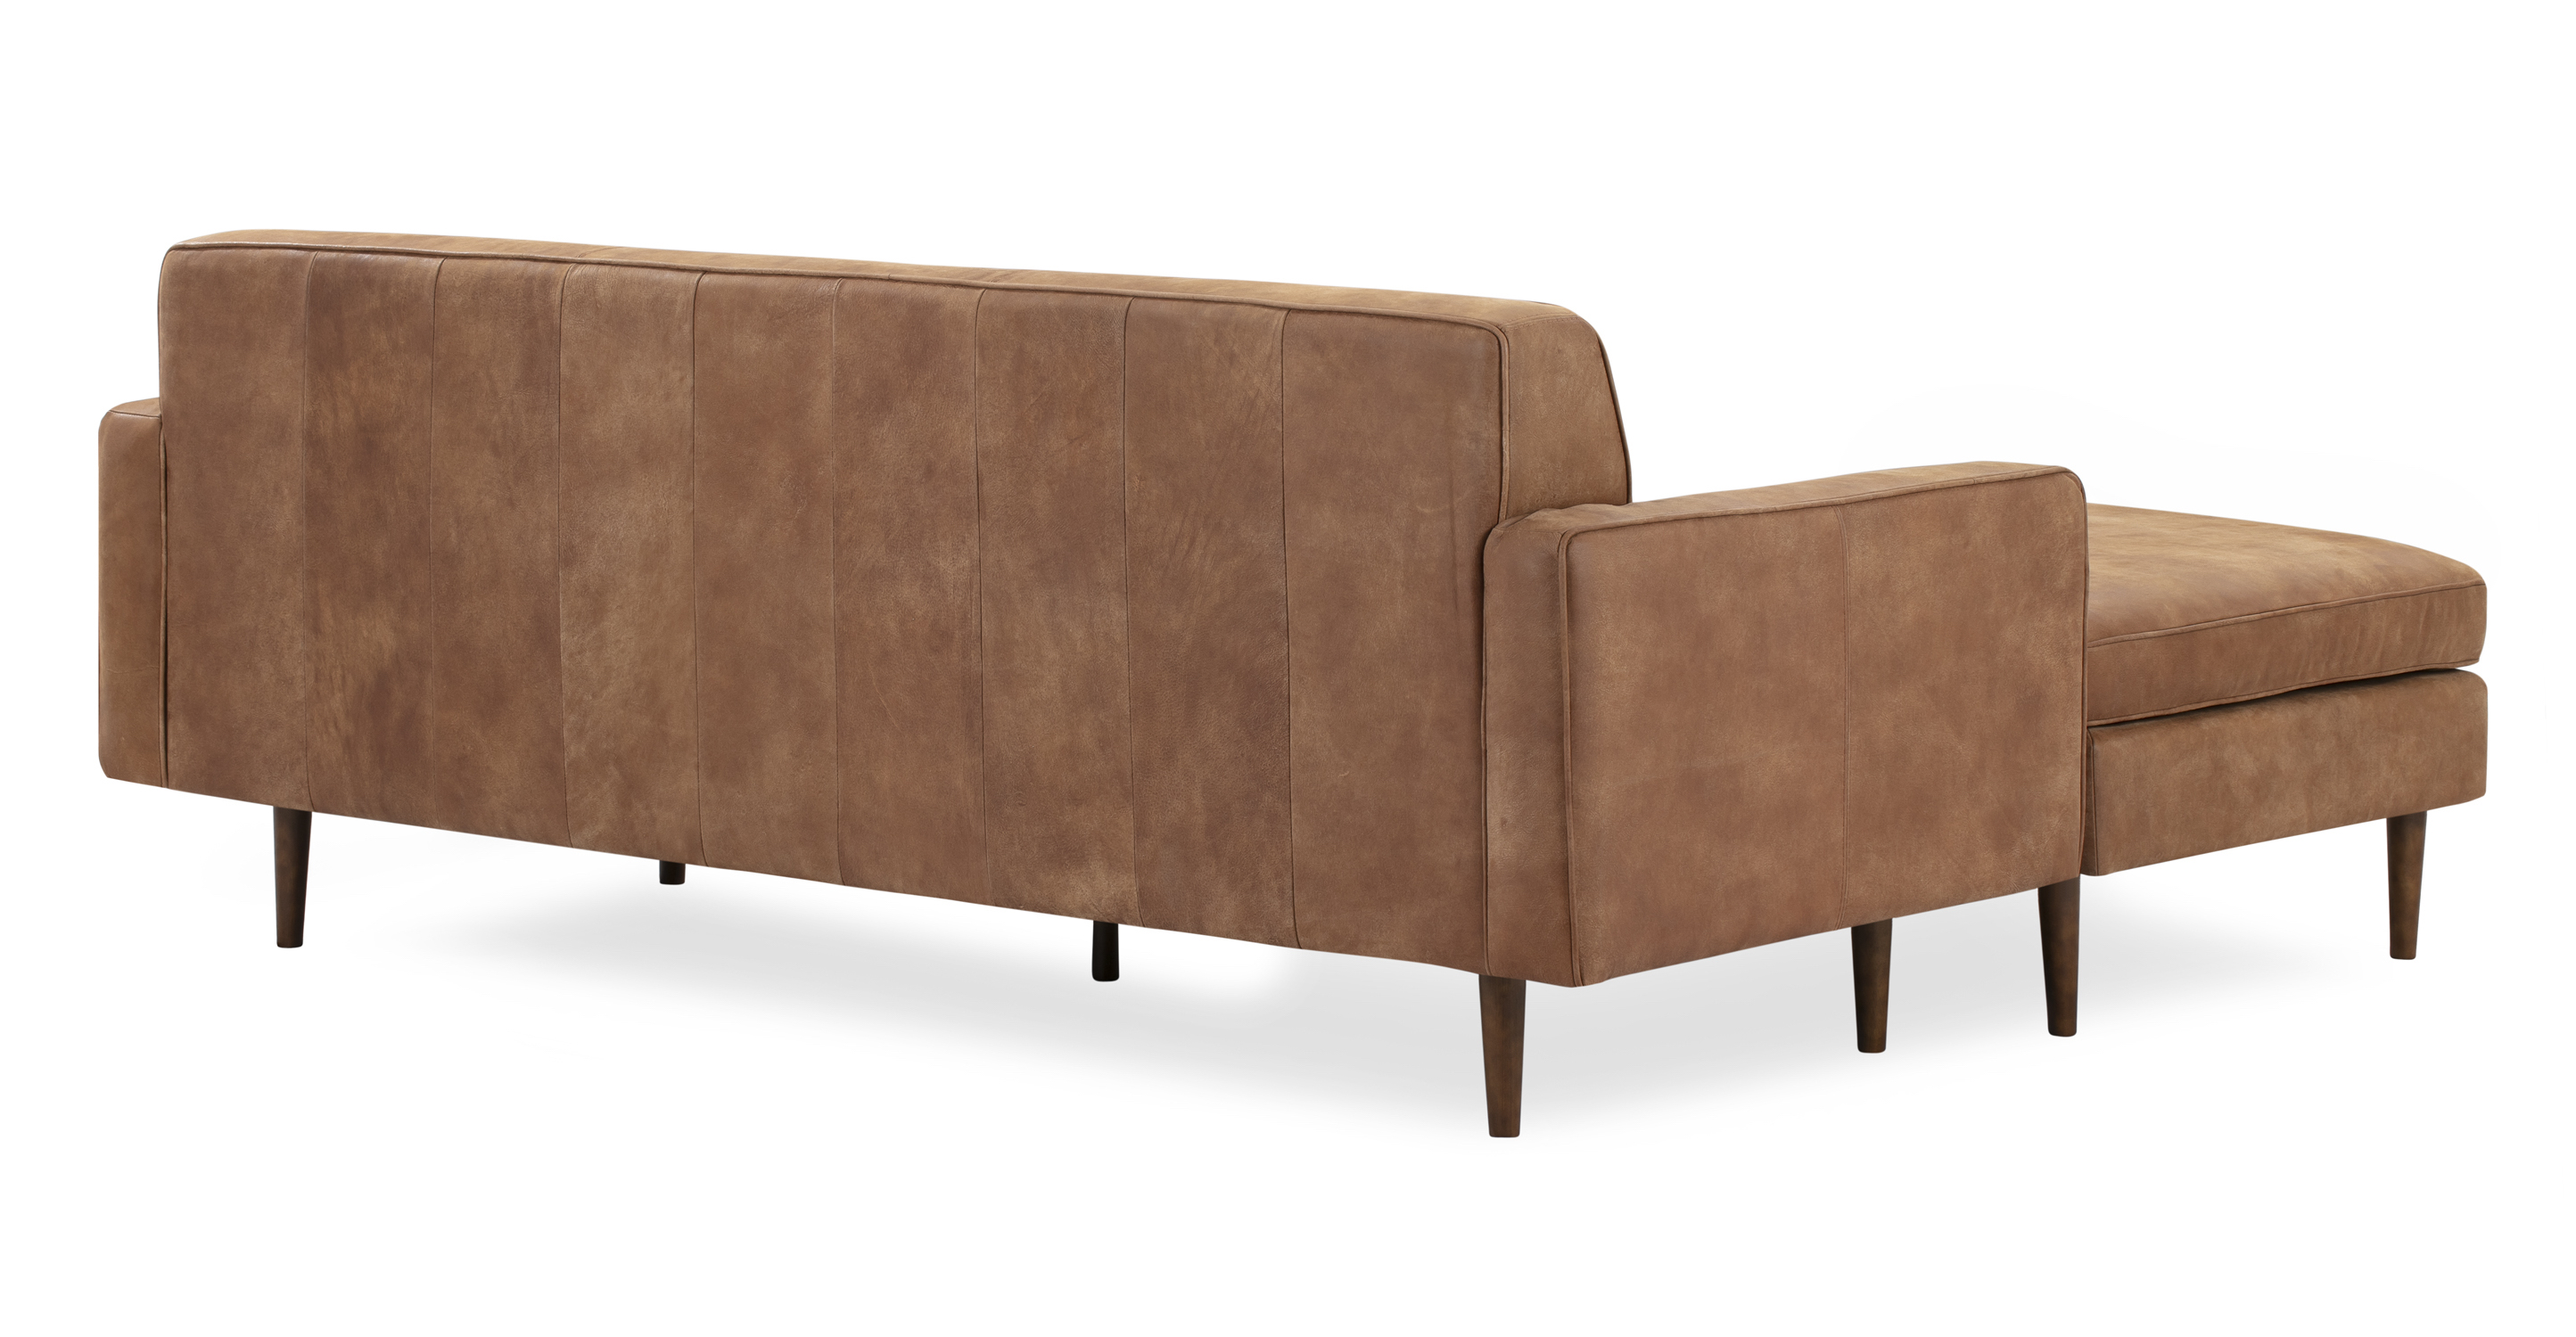 "Eleanor 85"" Leather Sofa Sectional Left, Cognac Full Aniline"